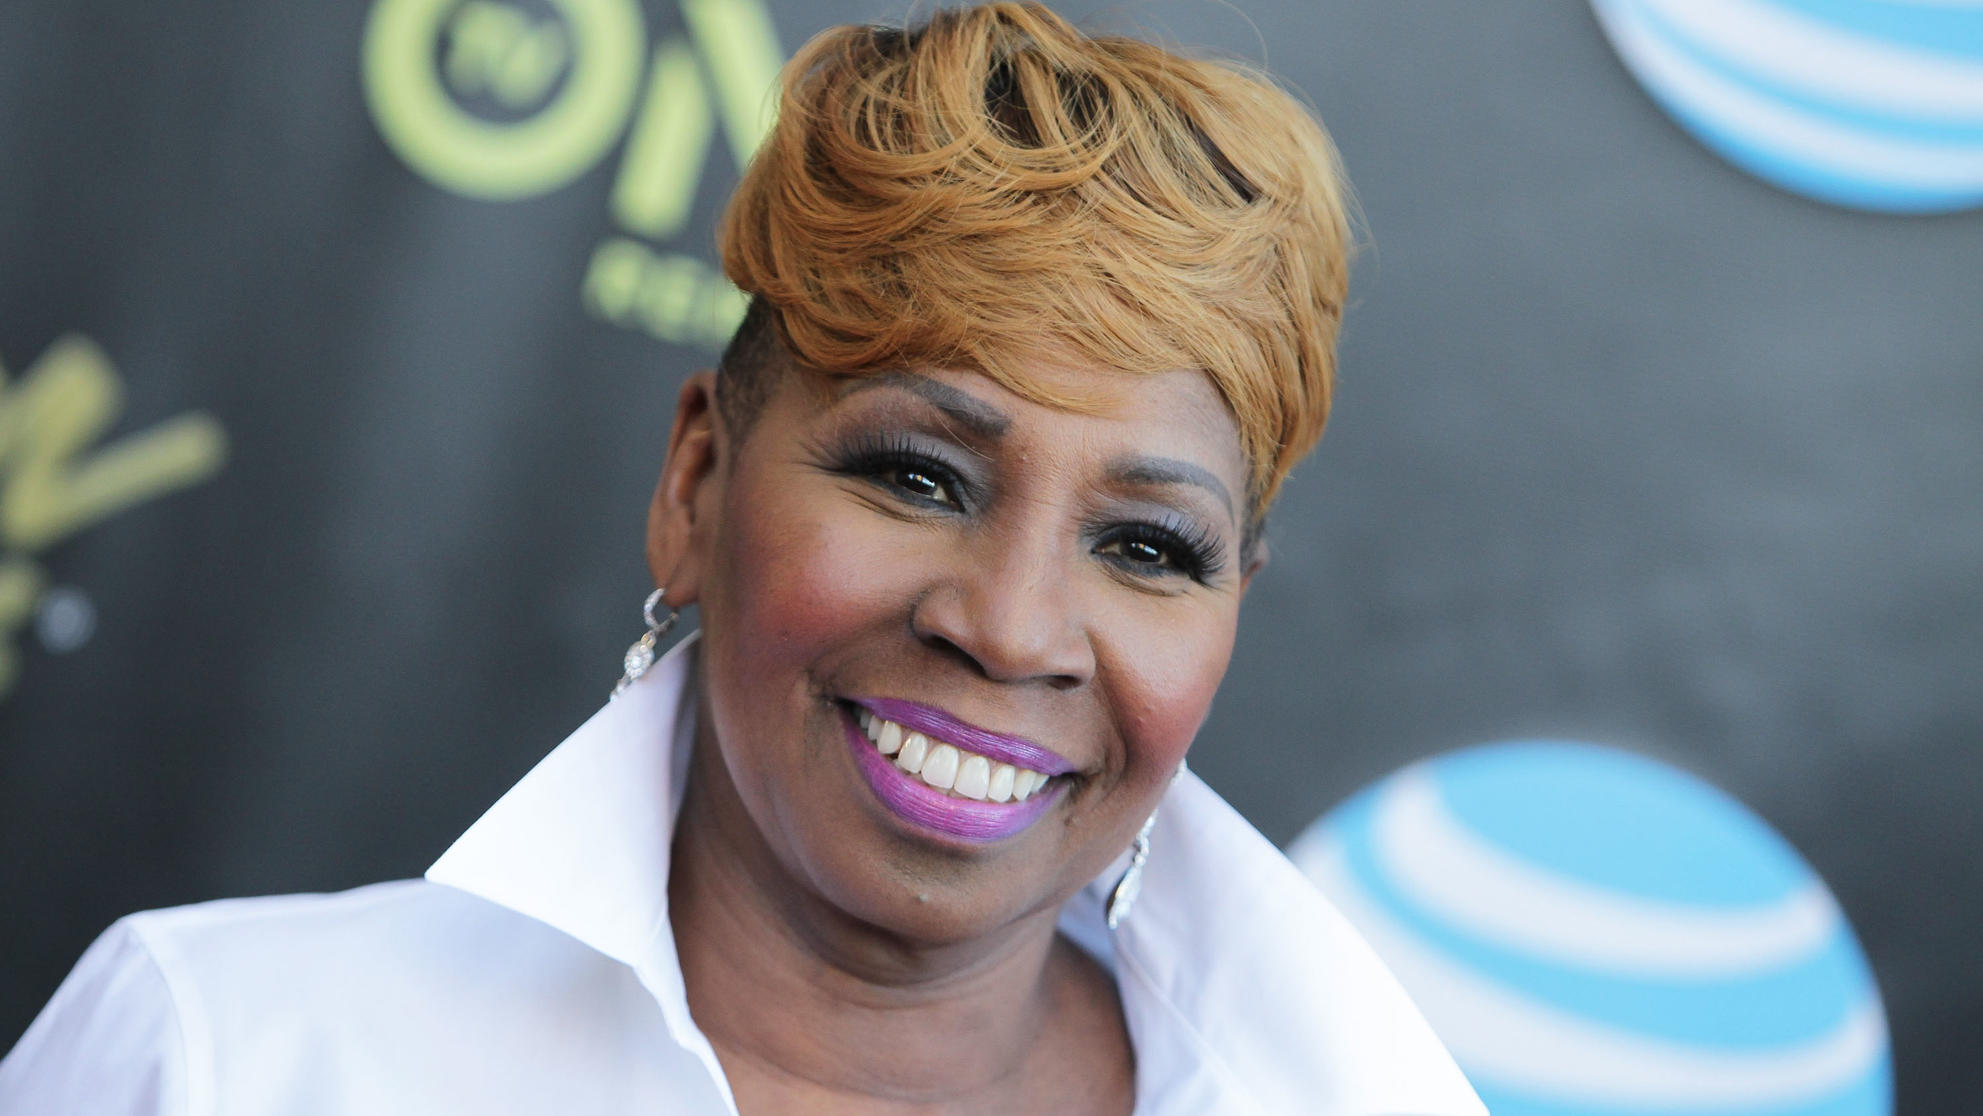 Iyanla Vanzant Opens Up About the Medical Emergency That Nearly Killed Her